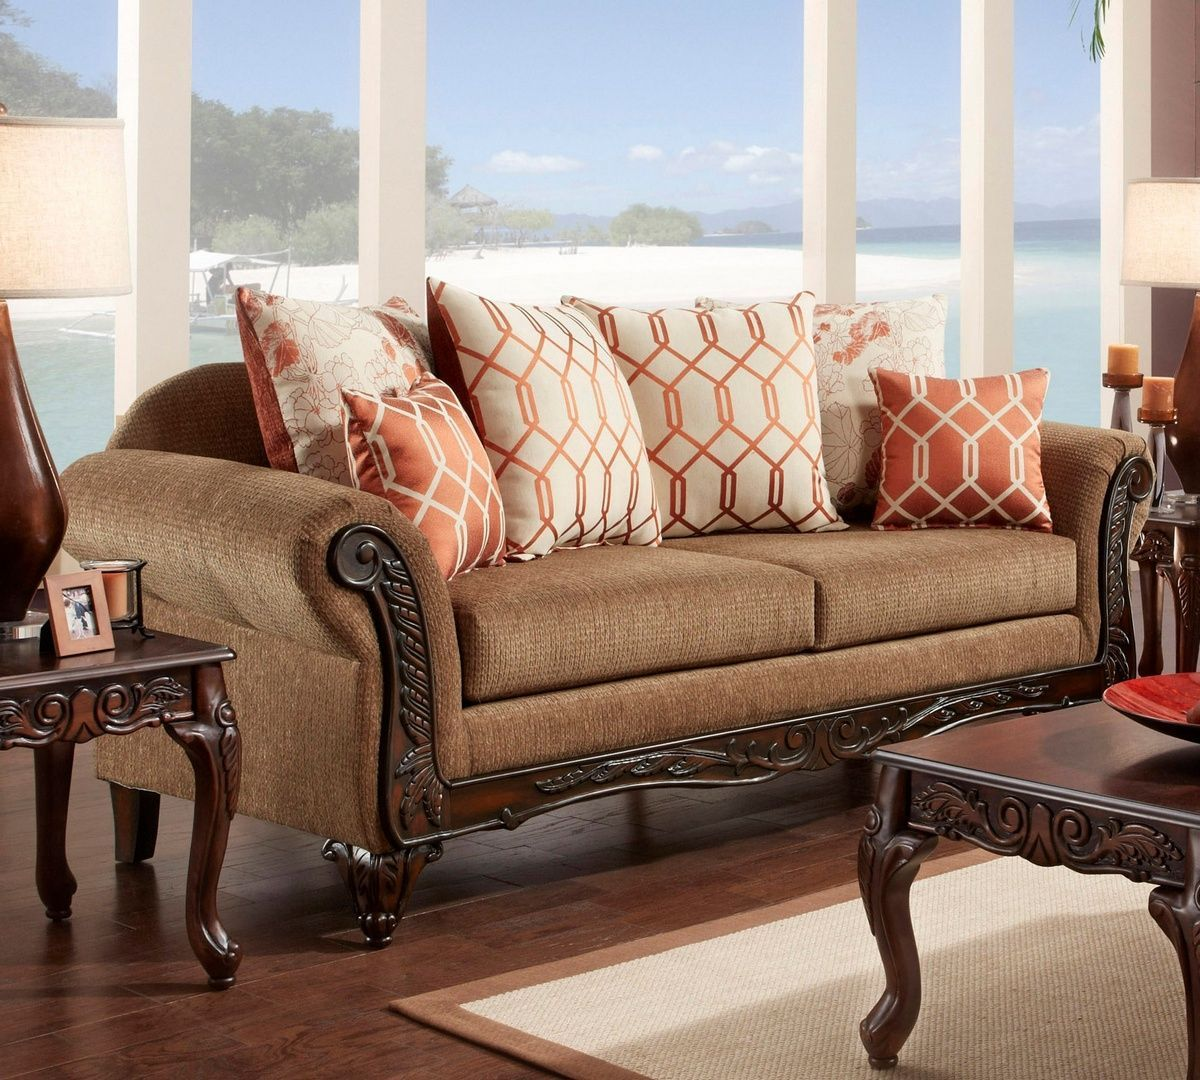 Benton Sofa Chelsea Home Furniture 726525 S In 2020 With Images